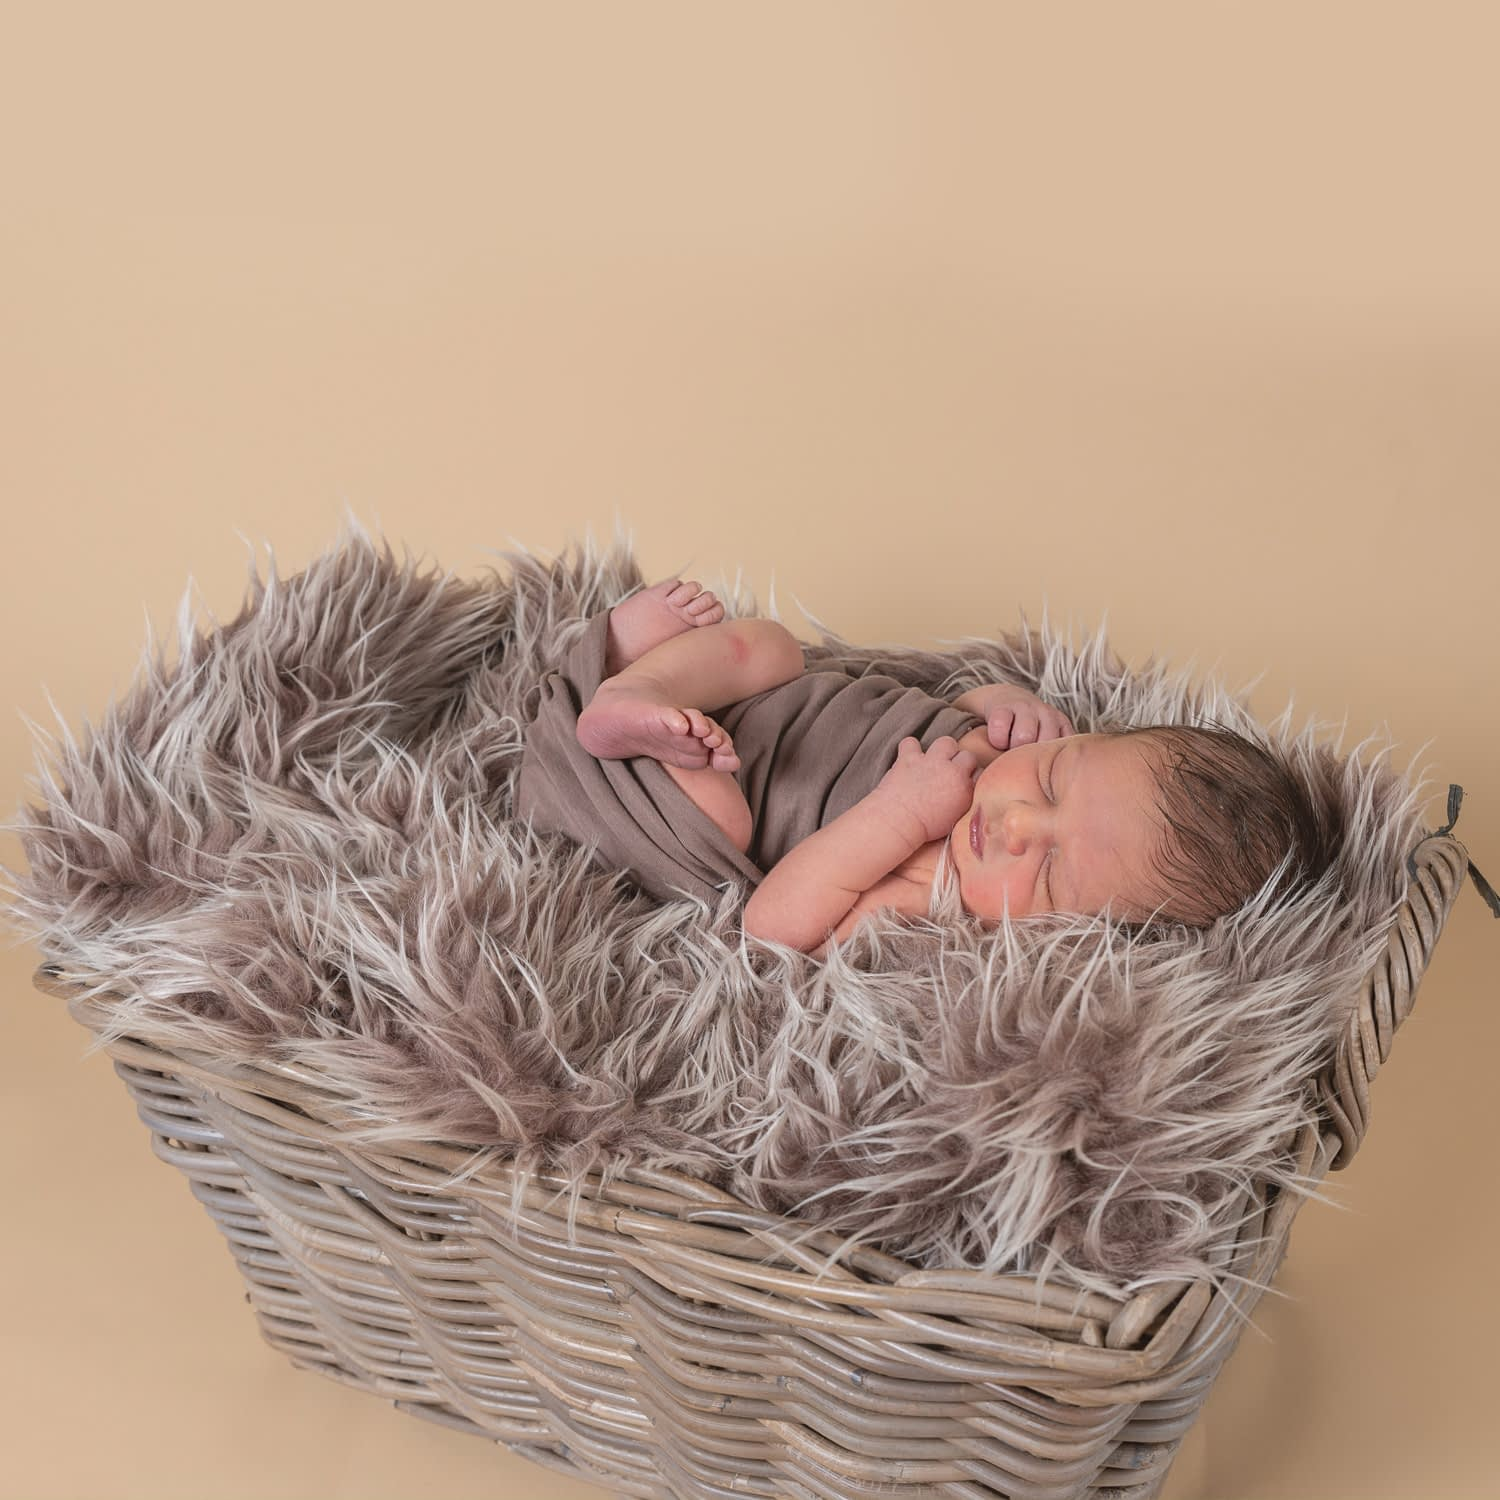 Newborn Photographer Crawley. Newborn baby boy laying on his back in a wicker basket on a brown fur blanket he is wrapped in a brown fabric with his arms and legs showing. Baby is sleeping and the background is a dark beige colour.